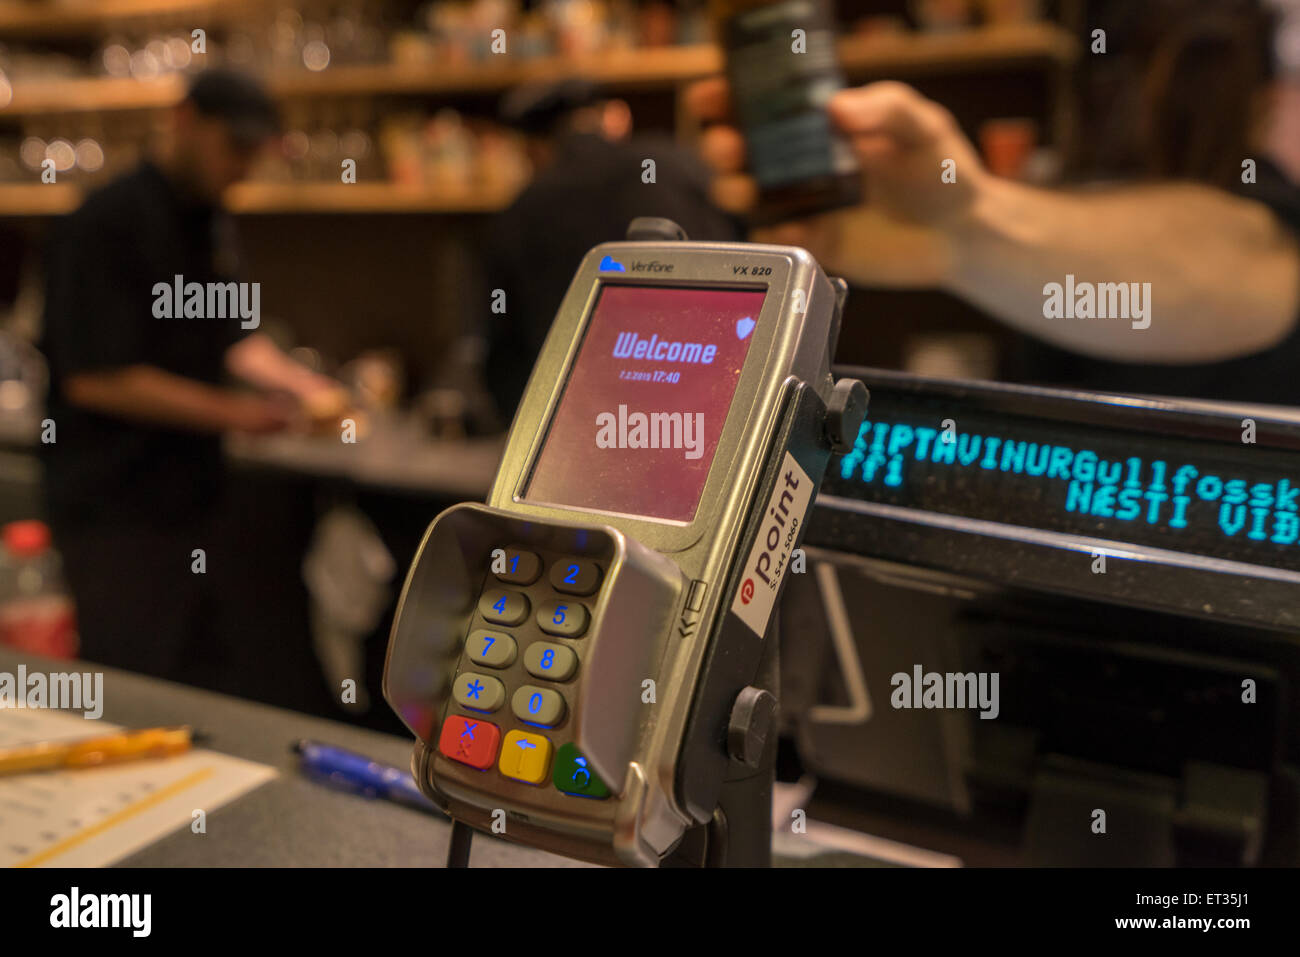 Credit card reader in small cafe, Iceland - Stock Image